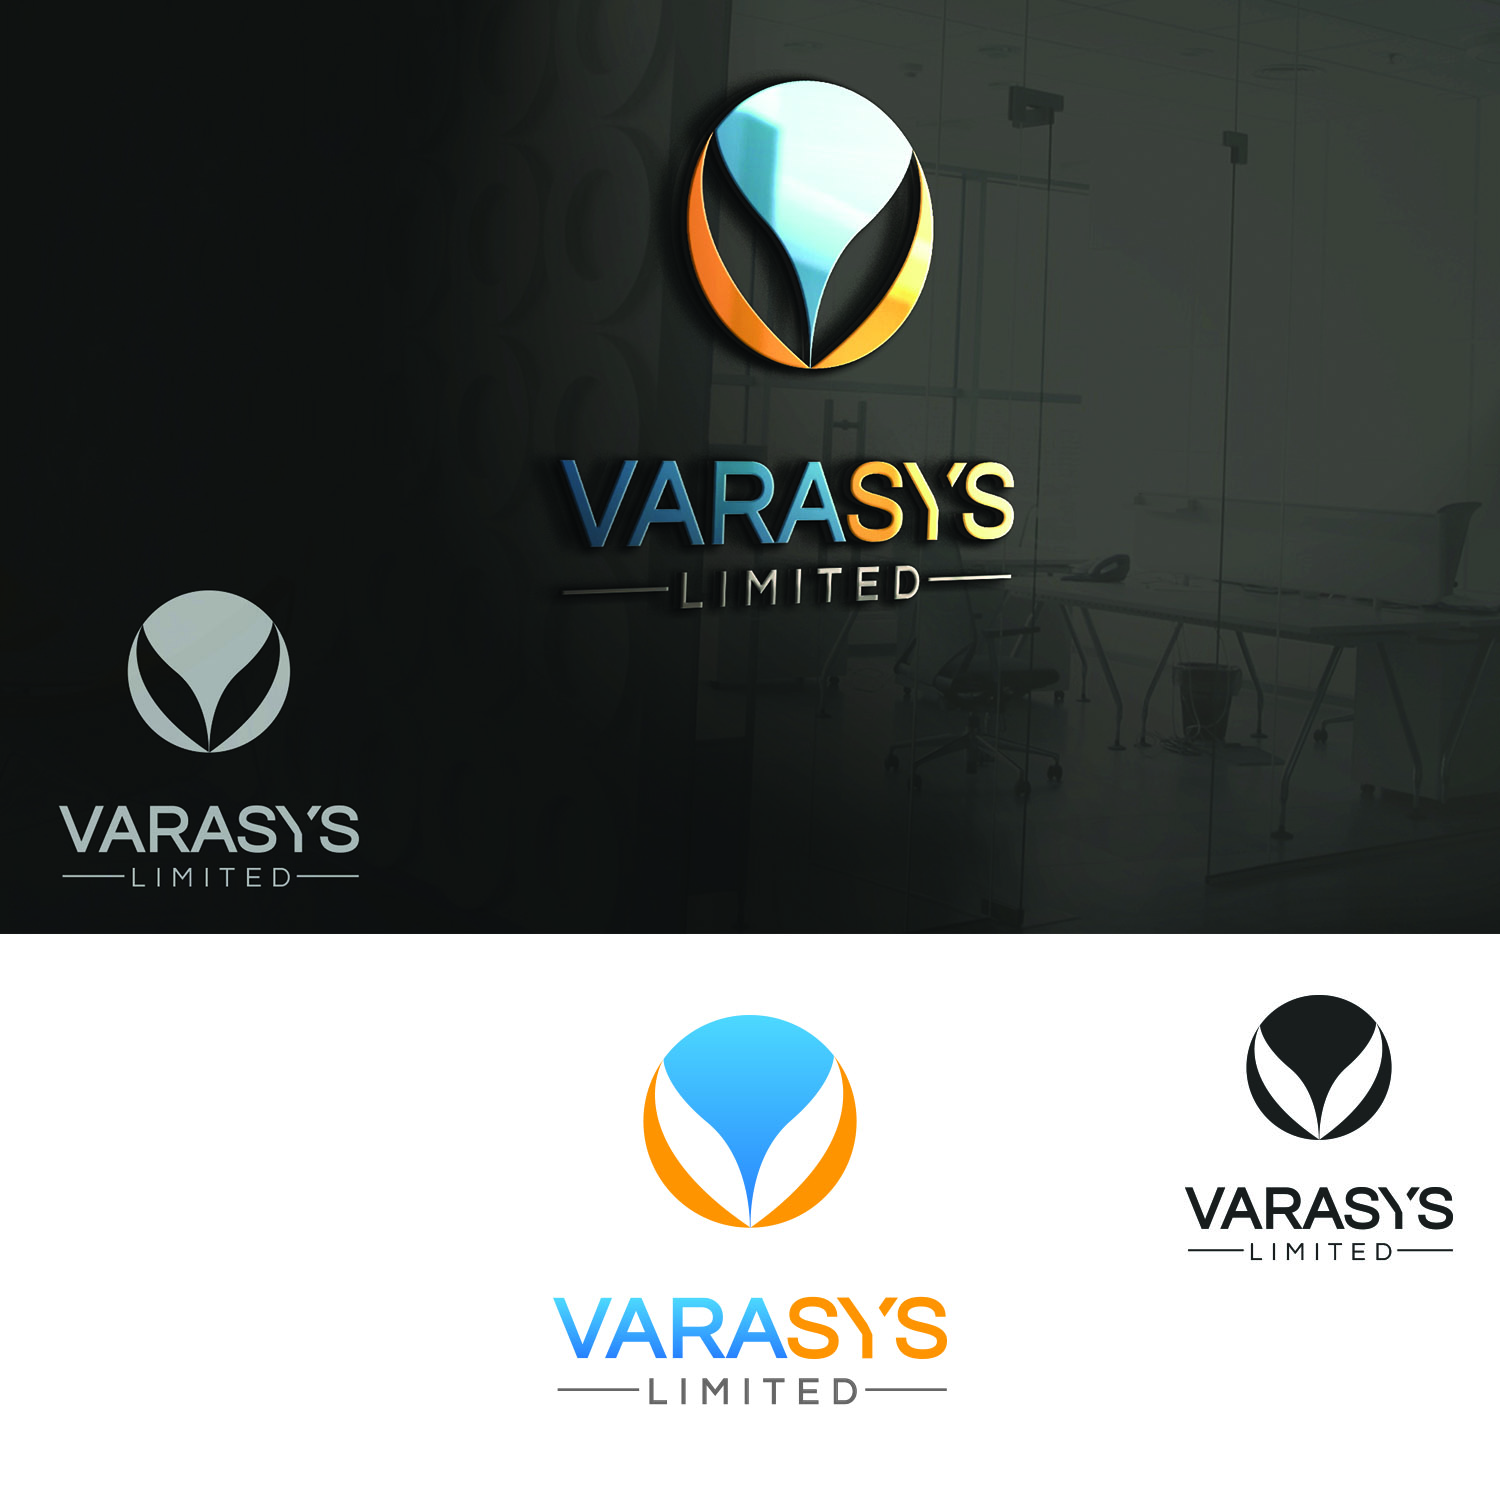 Logo Design by Umair ahmed Iqbal - Entry No. 59 in the Logo Design Contest Artistic Logo Design for VARASYS Limited.